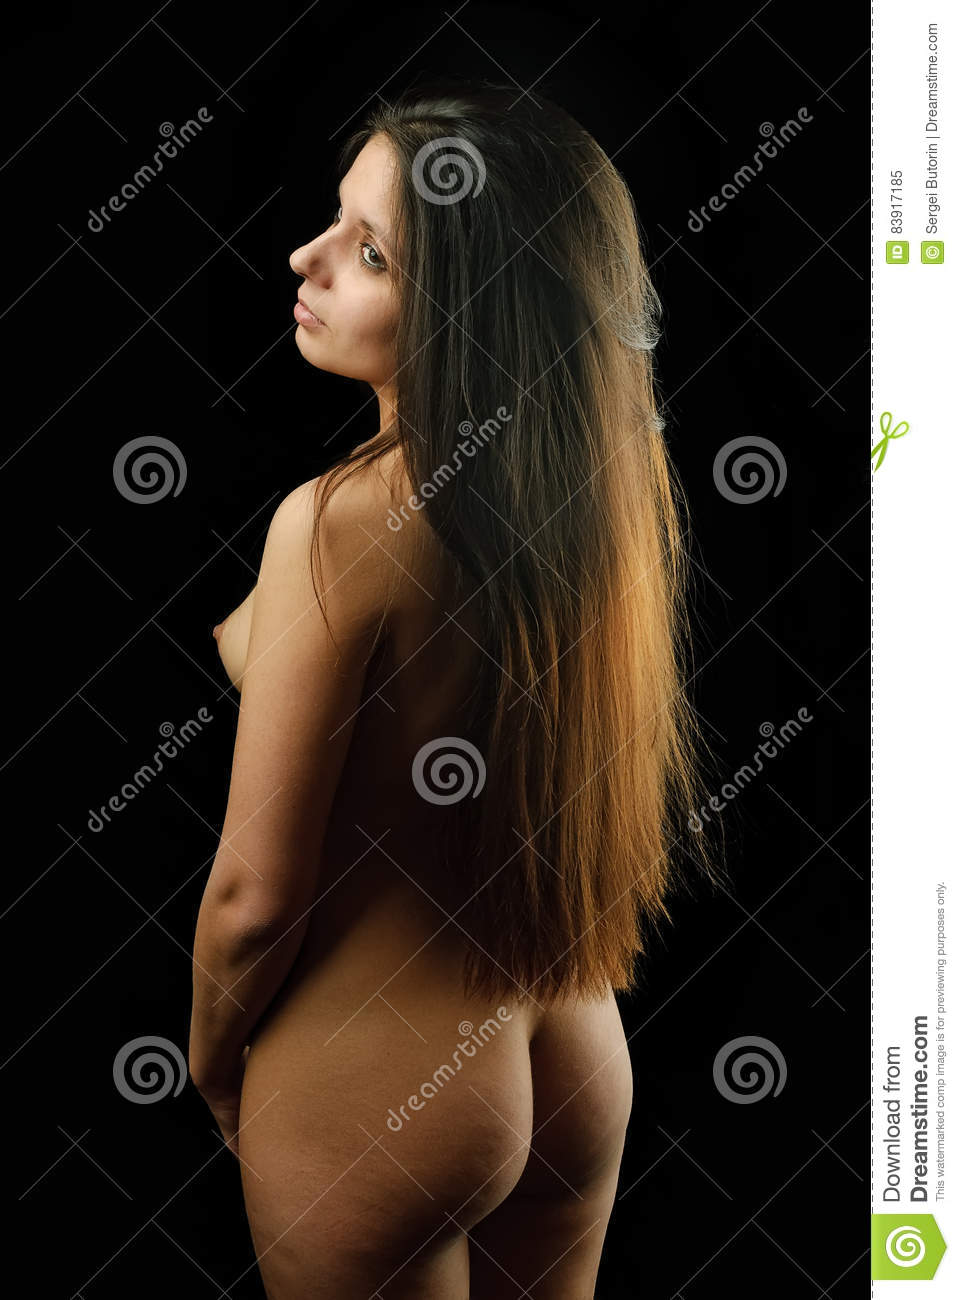 Beautiful back of naked woman. nude girl. young lady over black background